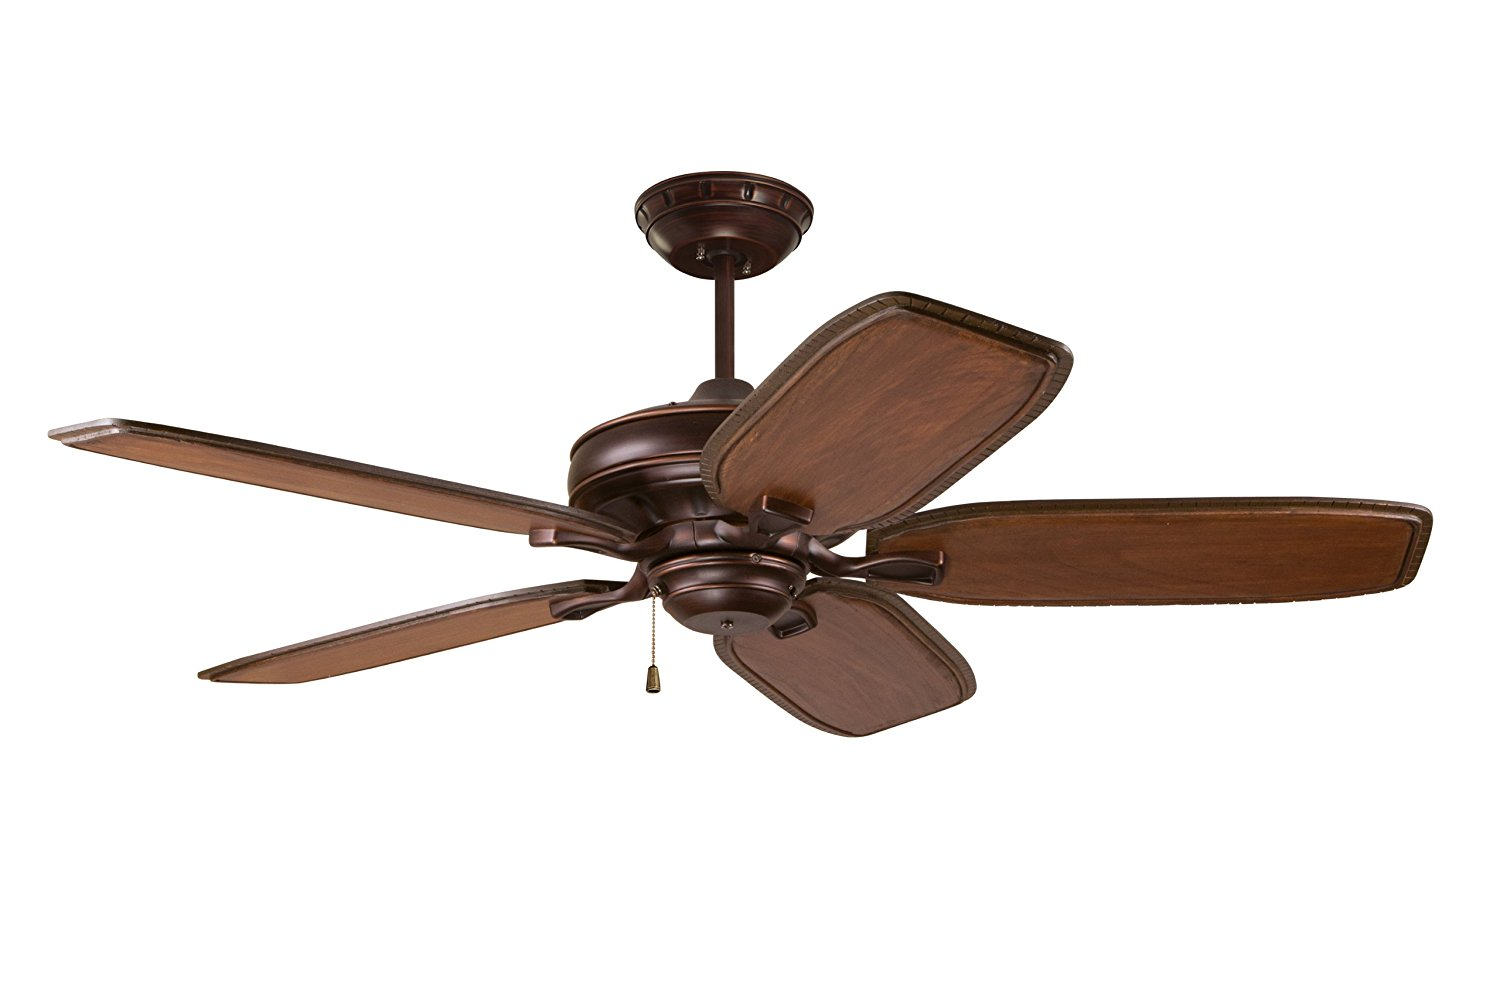 Emerson Ceiling Fans CF452VNB Bella 52-Inch Indoor Ceiling Fan, Light Kit Adaptable, Venetian Bronze Finish